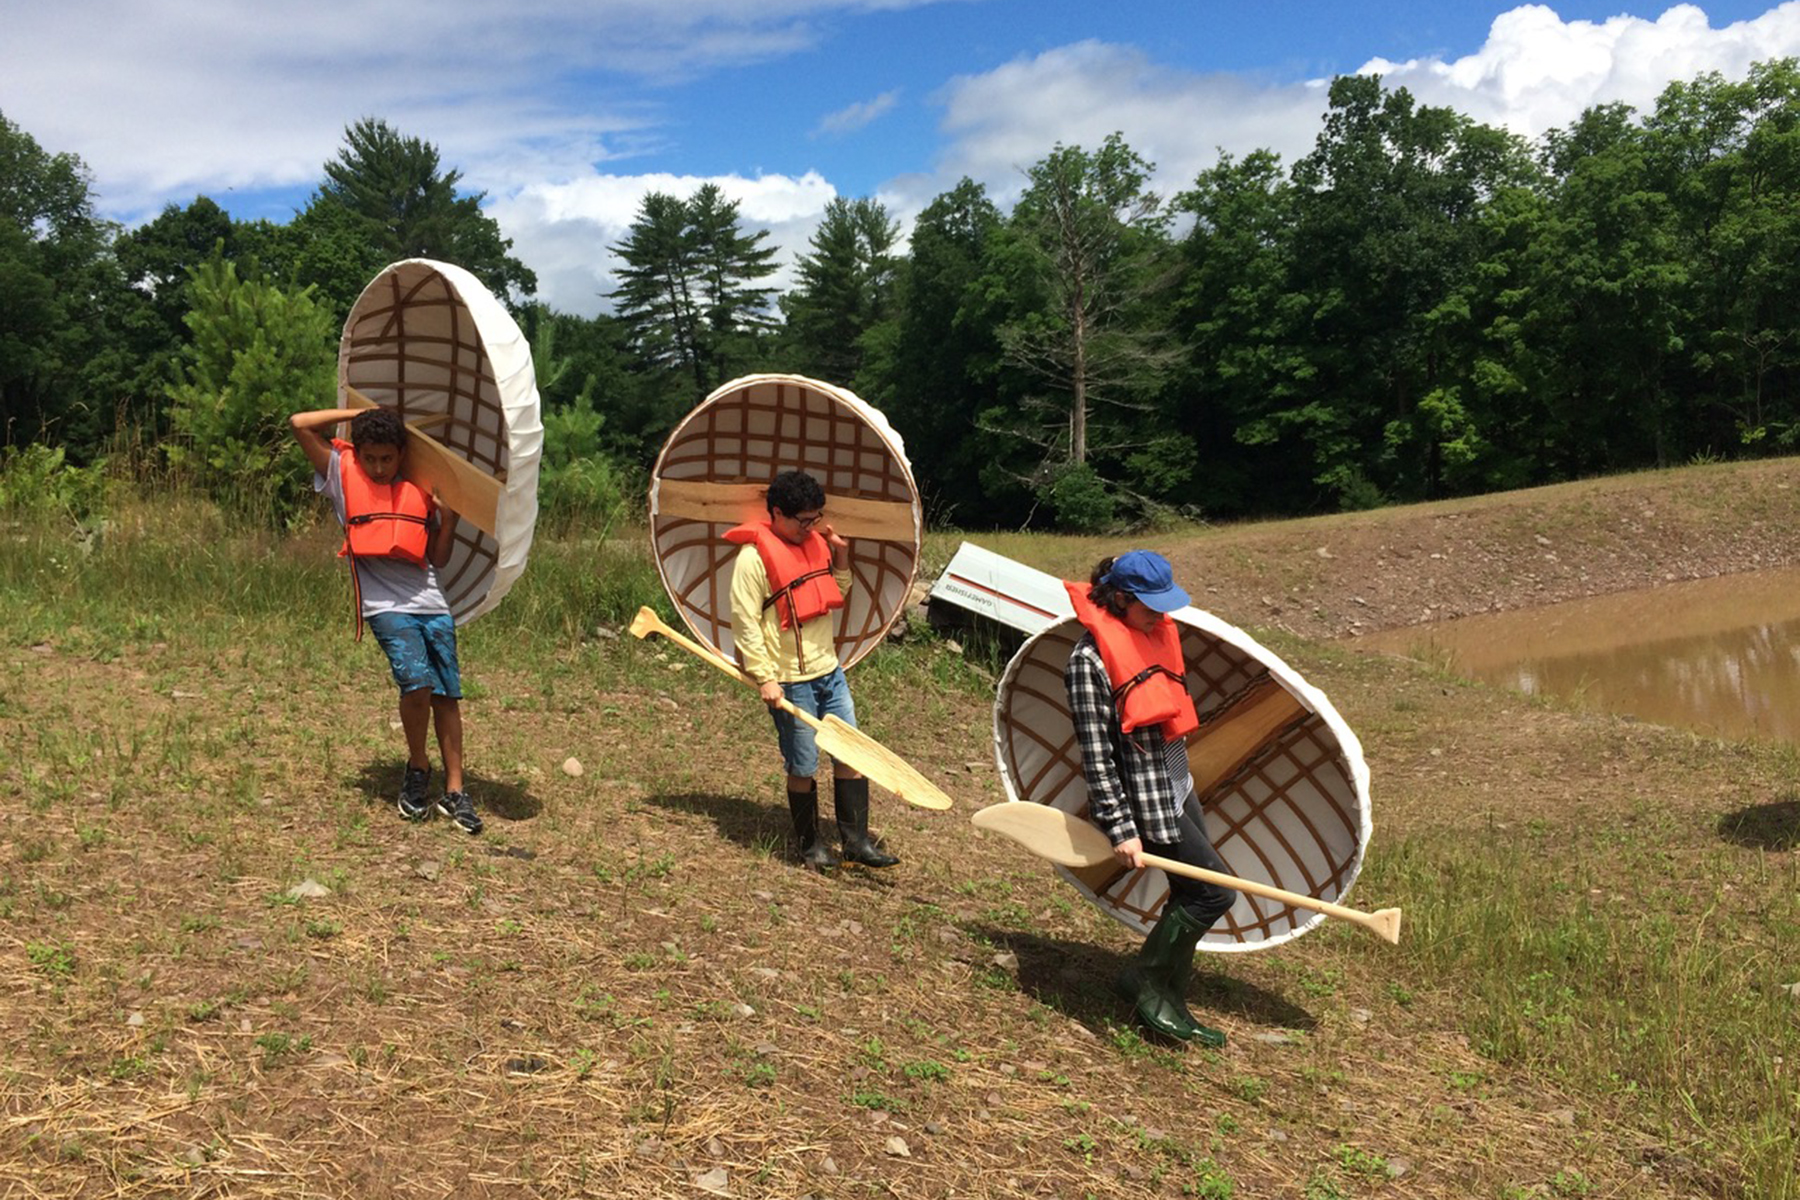 2016 Pond Session: Building Coracles with Resident Artist in Complex(ity), Gina Siepel. Photograph courtesy of Mildred's Lane.